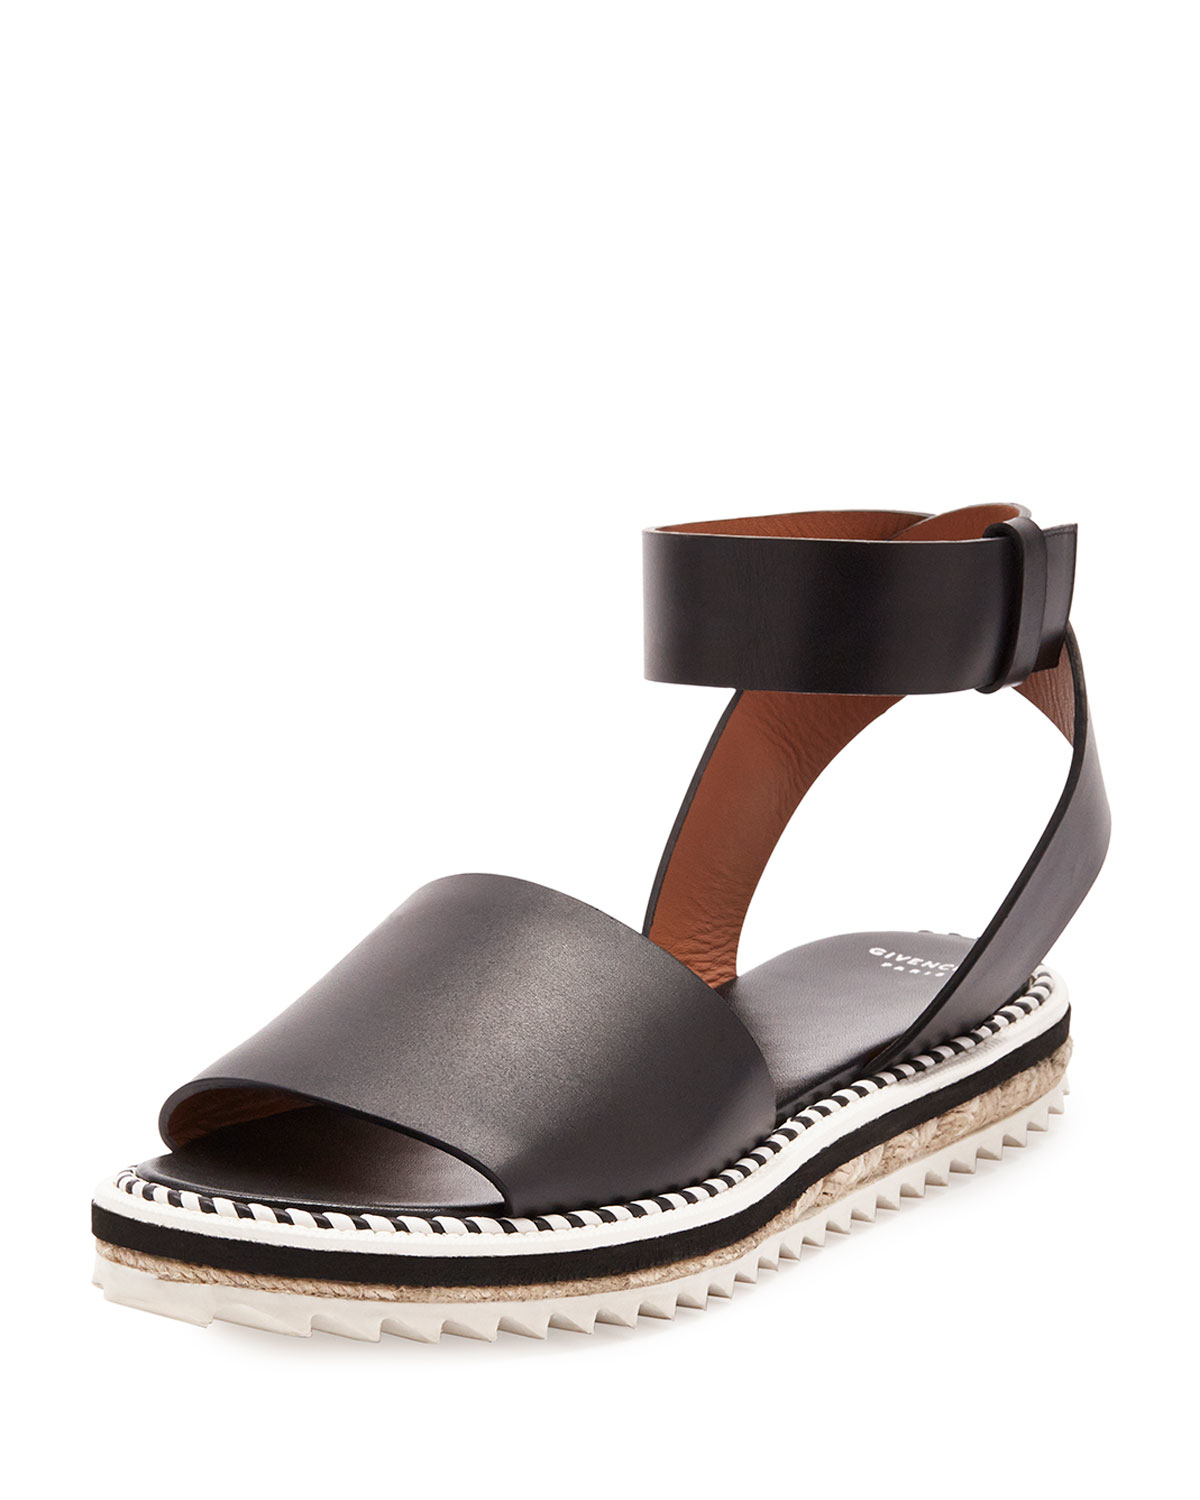 Givenchy Wedge Ankle Strap Sandals clearance fake discount purchase buy cheap authentic cheap fashion Style clearance pre order fxBCs5